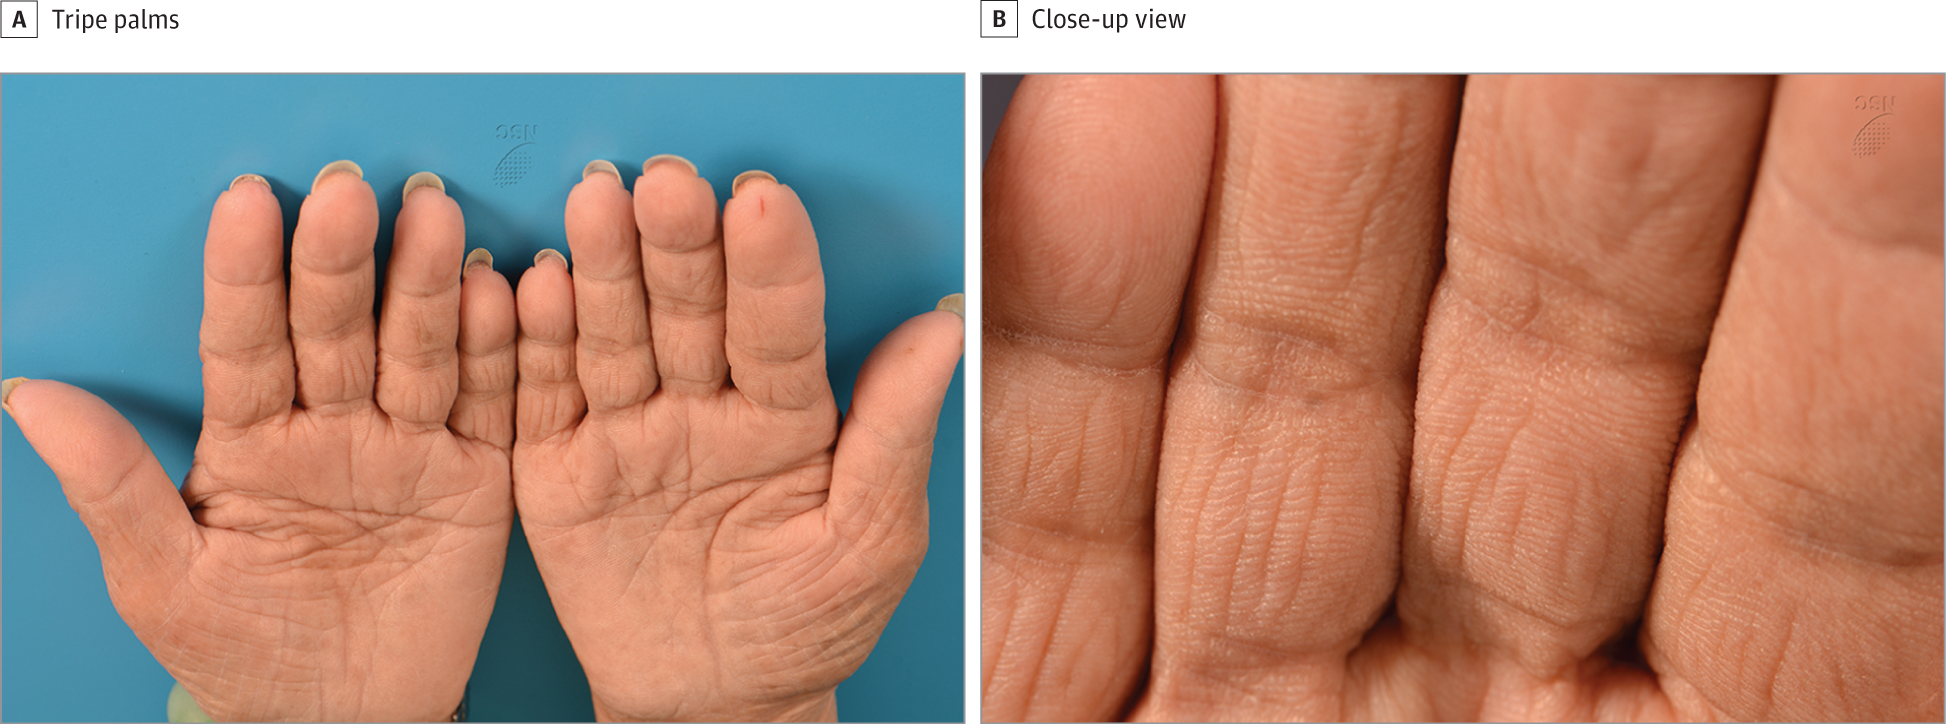 Clinical Images Of Tripe Palms